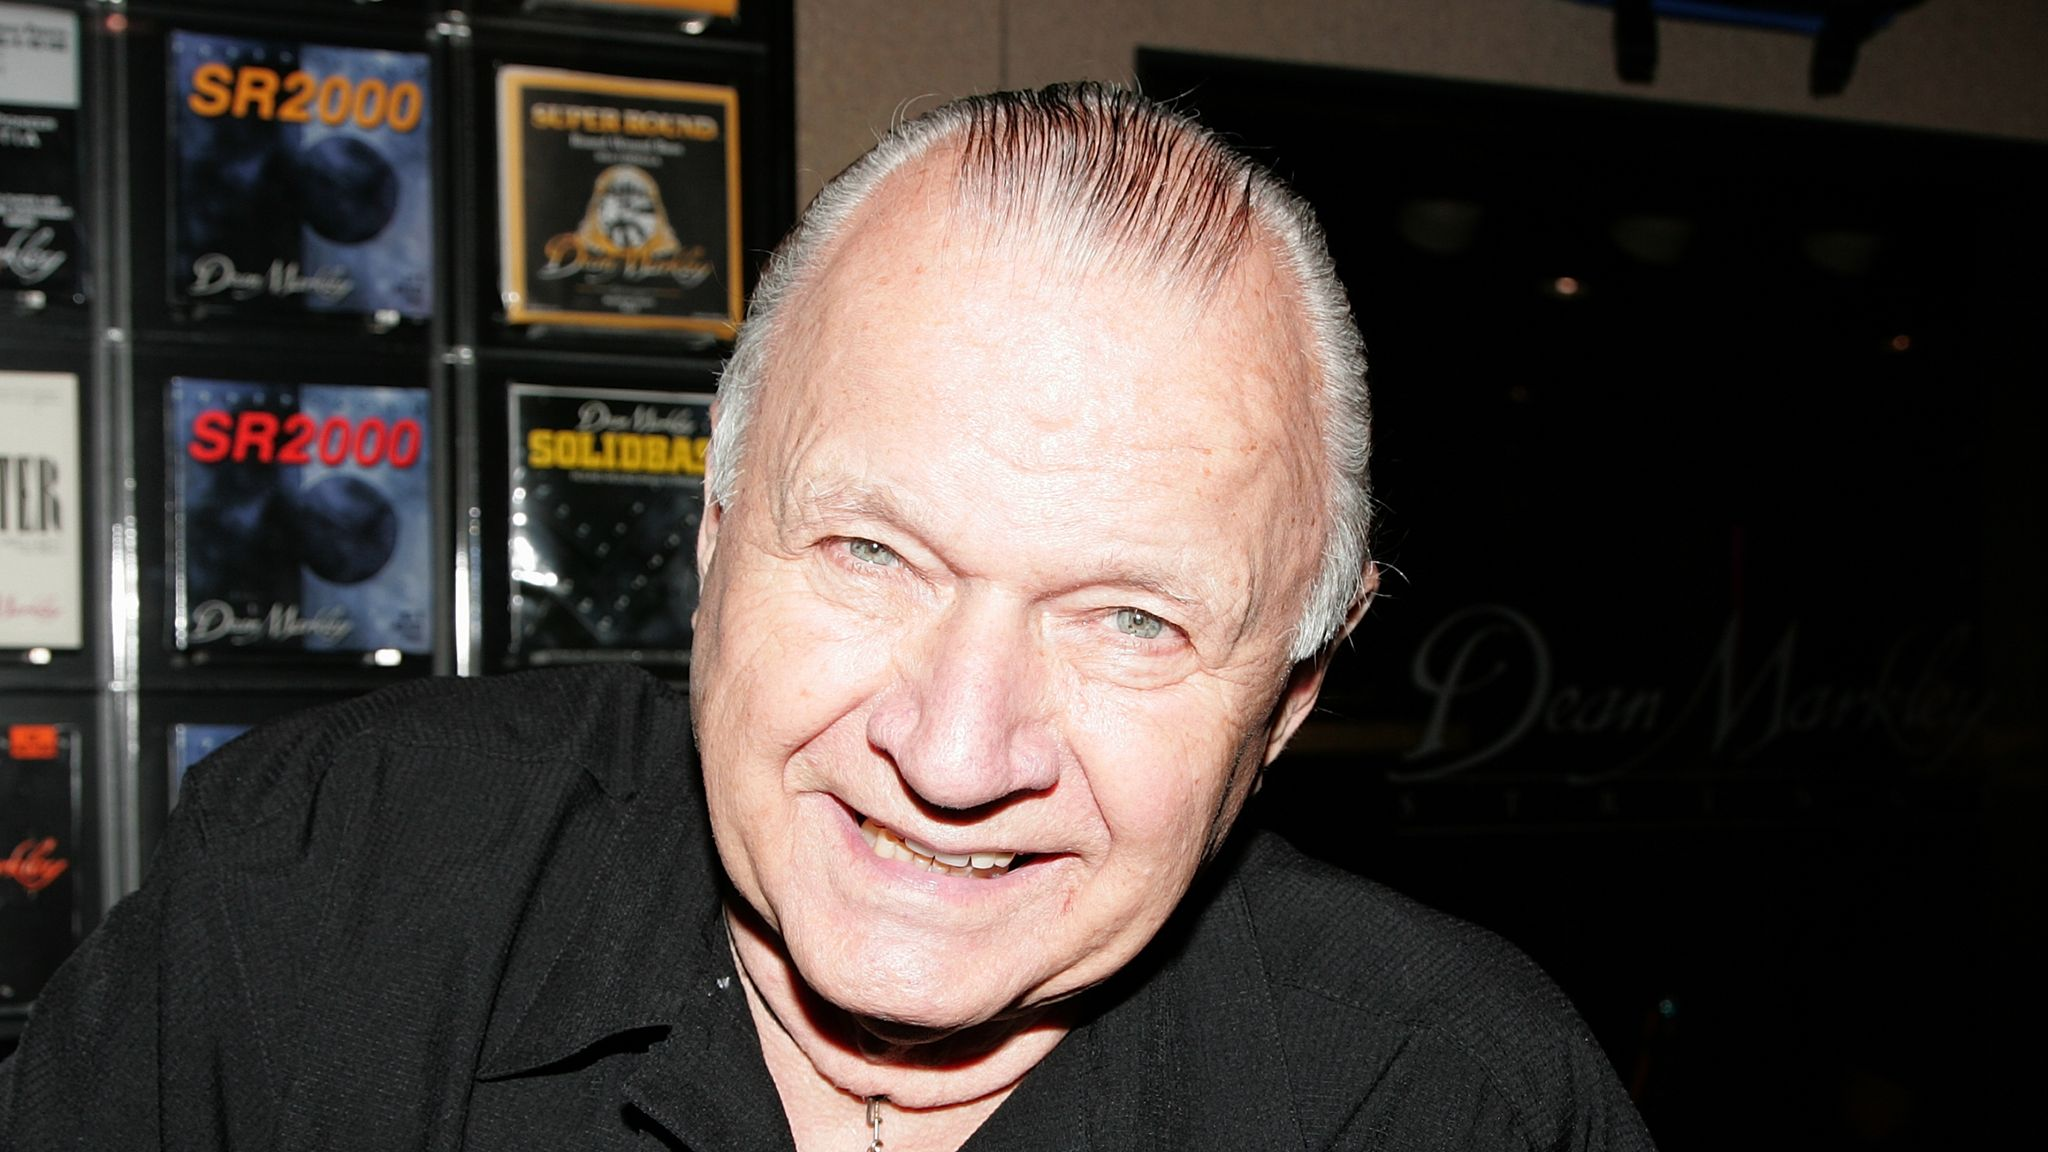 Dick Dale: Guitarist behind Pulp Fiction theme song dies age